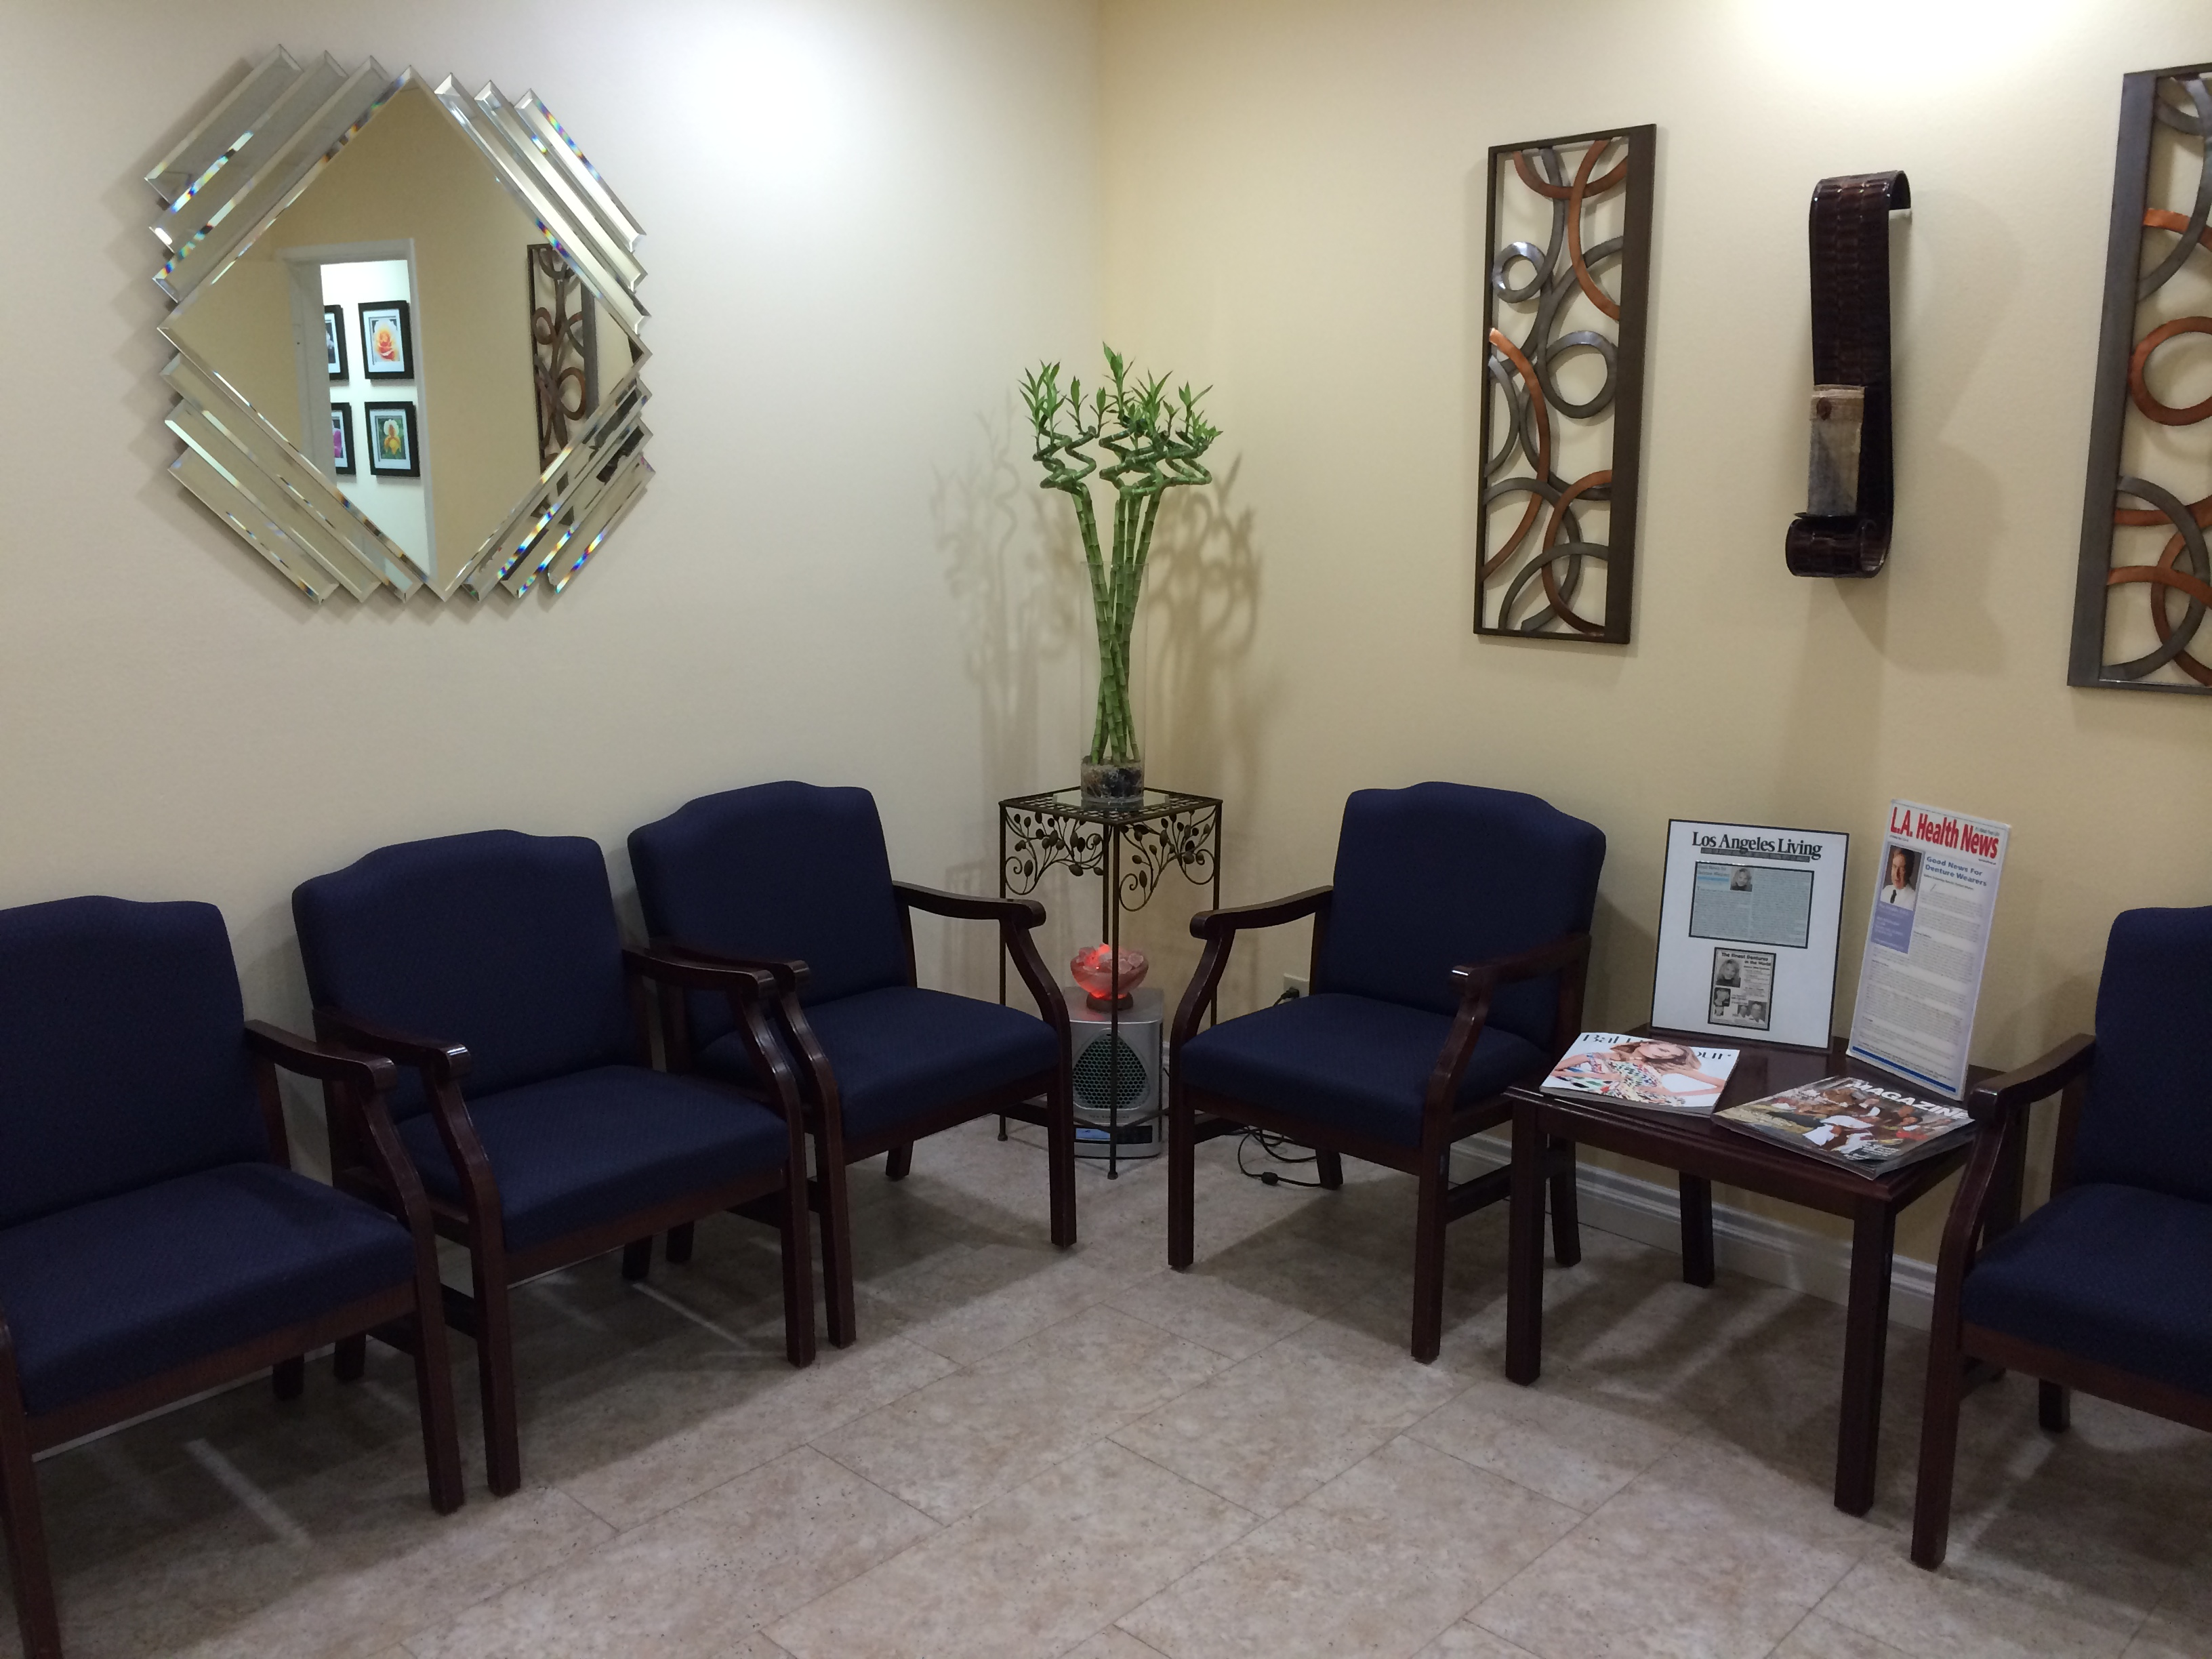 Geneva Dentistry Roy A. Smudde, D.D.S. | 25044 Peachland Ave Ste 100, Newhall, CA, 91321 | +1 (661) 222-7773